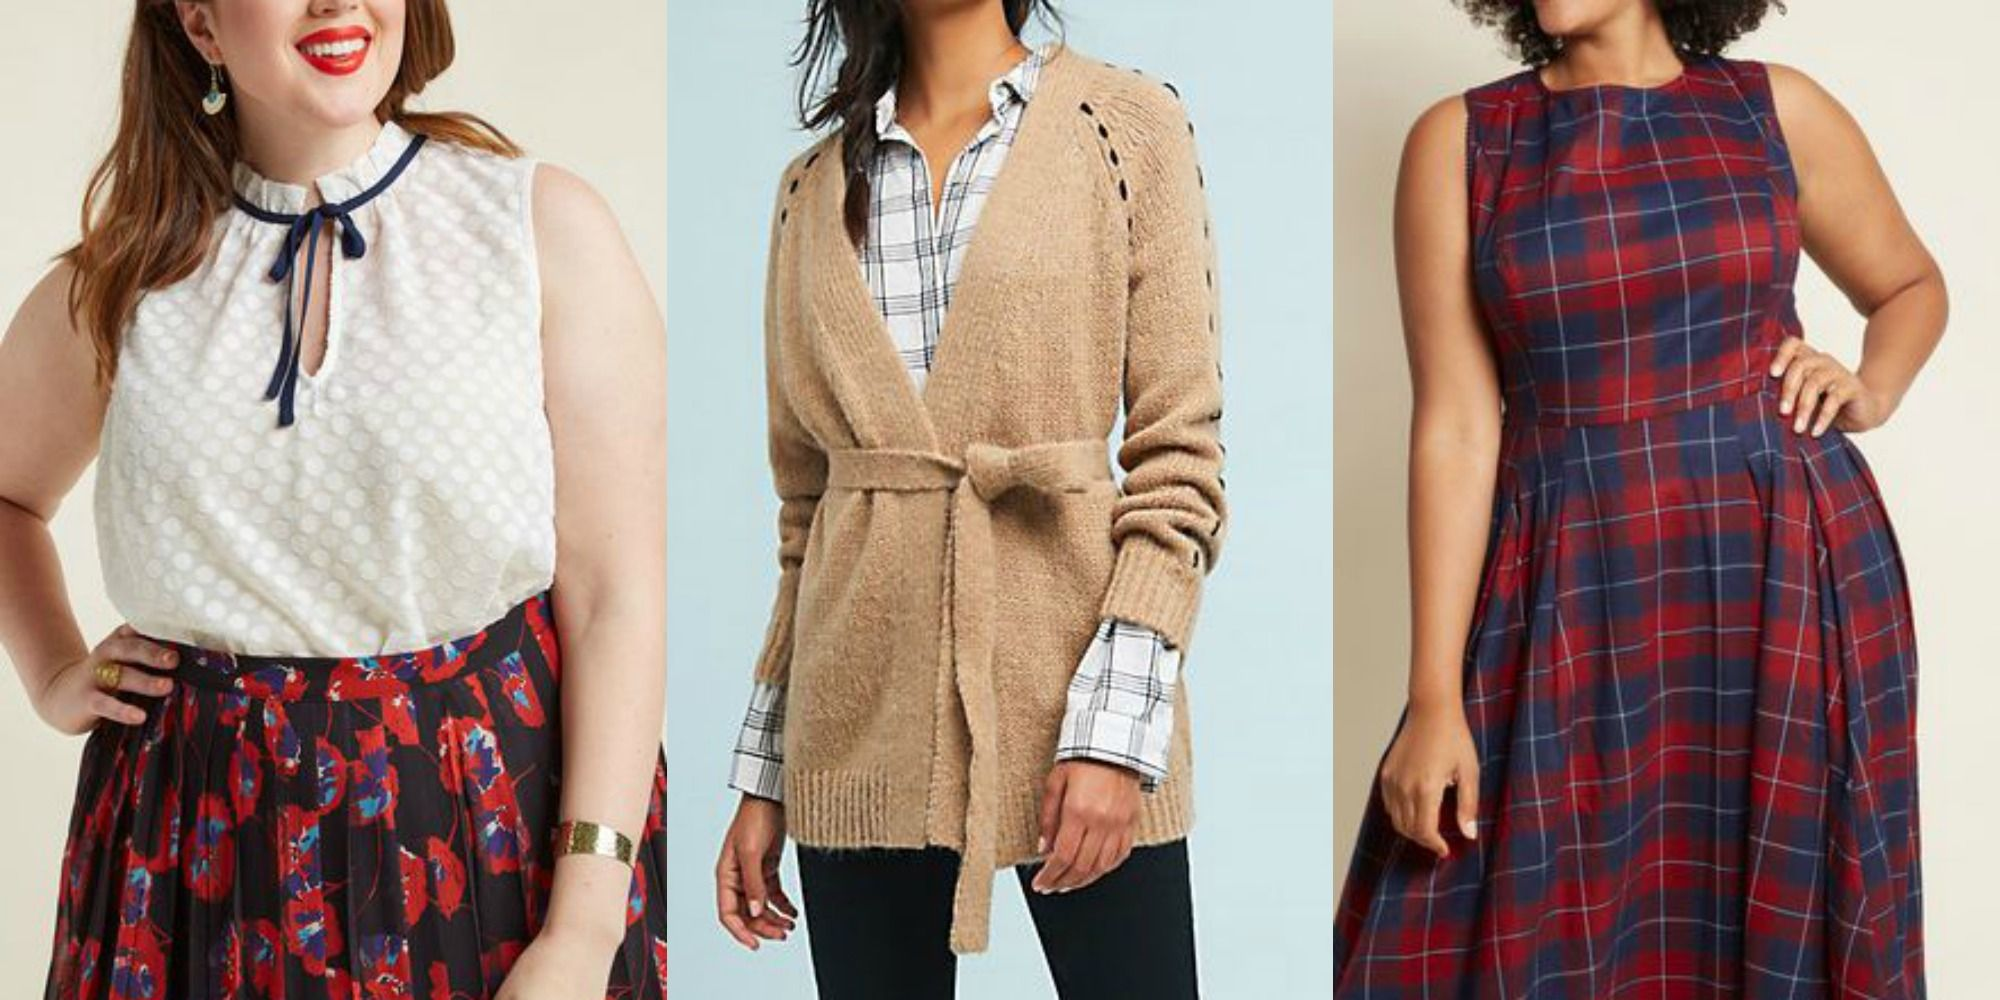 0baad1ec45 20 Cute Thanksgiving Outfits - What to Wear on Thanksgiving 2018